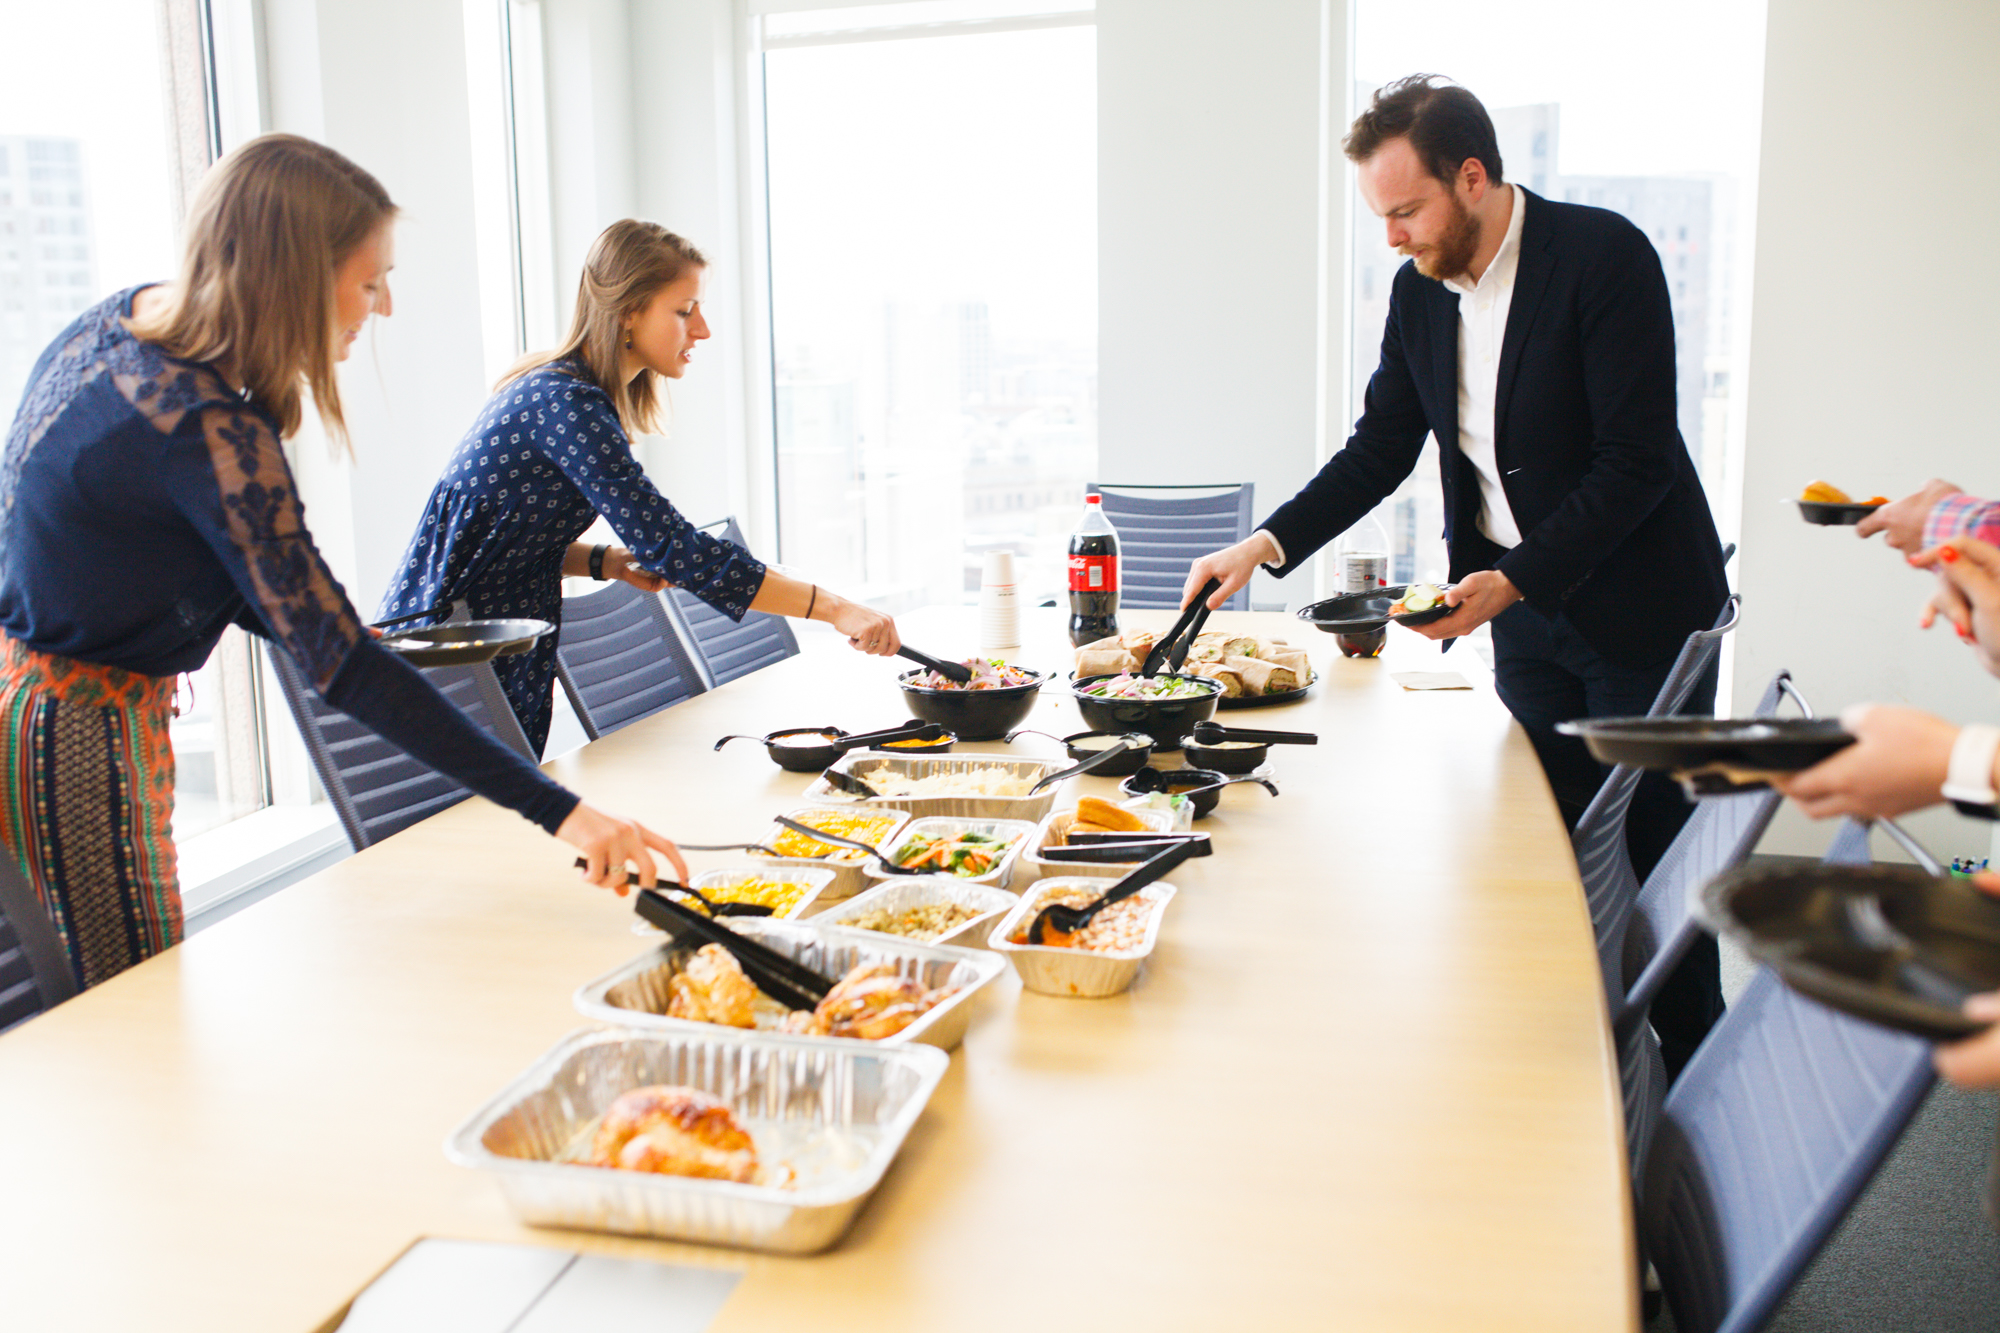 """As Thanksgiving and Christmas office parties inch ever closer, Boston Market is ready to help with holiday catering. """"The holiday season is kind of our Super Bowl if you will,"""" says Maria Strickland of Boston Market. Strickland is the director of catering sales support at Boston Market and has been with the chain for 11 years. Her team is already reaching out to regular catering customers to assist them in menu planning. They'll begin collaborating with customers on festive holiday spreads, too. These accommodations are all done with ease because Boston Market keeps customer notes on file like head counts, delivery arrangements, and any special catering menus customers may have requested in the past. Their goal is to make catering as easy as possible. For more than three decades, Boston Market has made holiday meals incredibly easy with their catering. With over 450 locations nationwide, the chain became famous for rotisserie chicken and other comfort food classics when Steven Kolow and Arthur Cores founded it in Massachusetts back in 1985. More than three decades later, Boston Market is still a dependable caterer, especially as the holidays arrive. """"We've been around so long because of the quality of our food,"""" explains Strickland. """"It's what people wish they had time to cook."""" At this time of year, the chain focuses on seasonal holiday favorites. Boston Market can be relied on to deliver classics like freshly roasted turkey and meatloaf. Their seasonal menus also revolve around festive sides like classic mashed potatoes and gravy, savory stuffing, and sweet corn. Their toasted marshmallow-topped sweet potato casserole, gooey macaroni and cheese, and tender green beans tossed in warm garlic butter bring to mind the sort of fare an American family might dine on at home. """"It all ties into what people grew up with, and what they remember eating at their grandmother's house, their parents' house, or whatever traditions that they have,"""" Maria Strickland says. While Bost"""